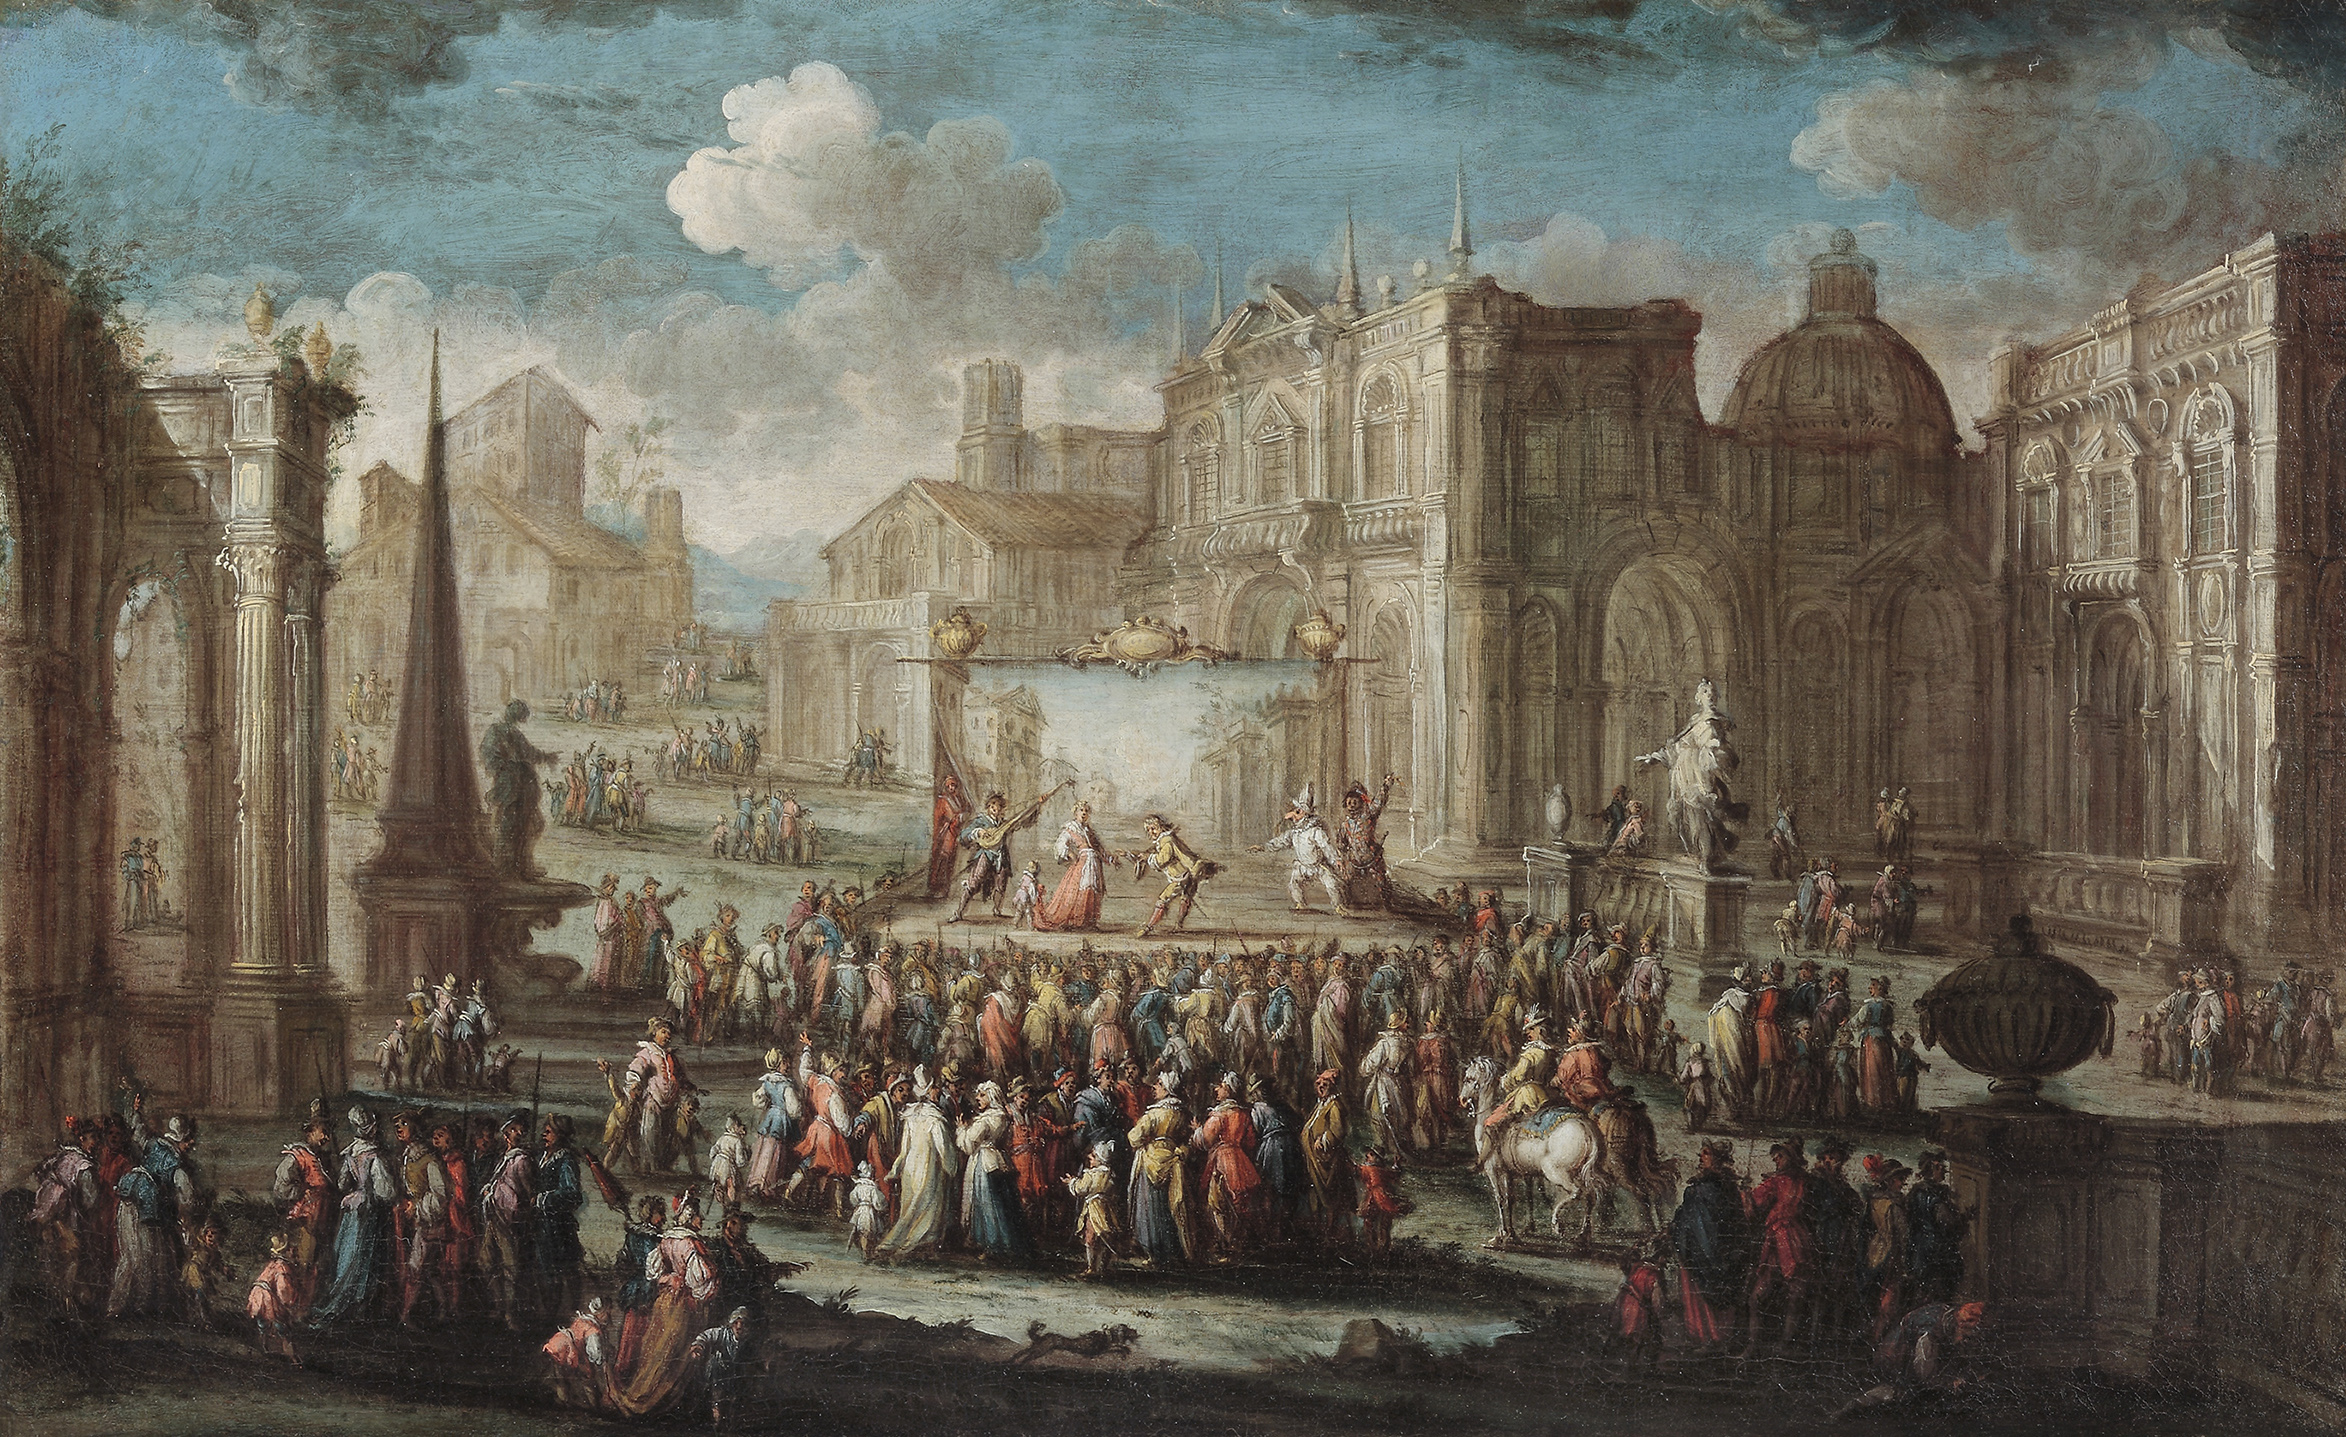 Gherardo Poli  (b. 1676),  A Performance from the Commedia dell'Arte set in a Piazza  22 ¼ x 36 ¼ in. oil on canvas